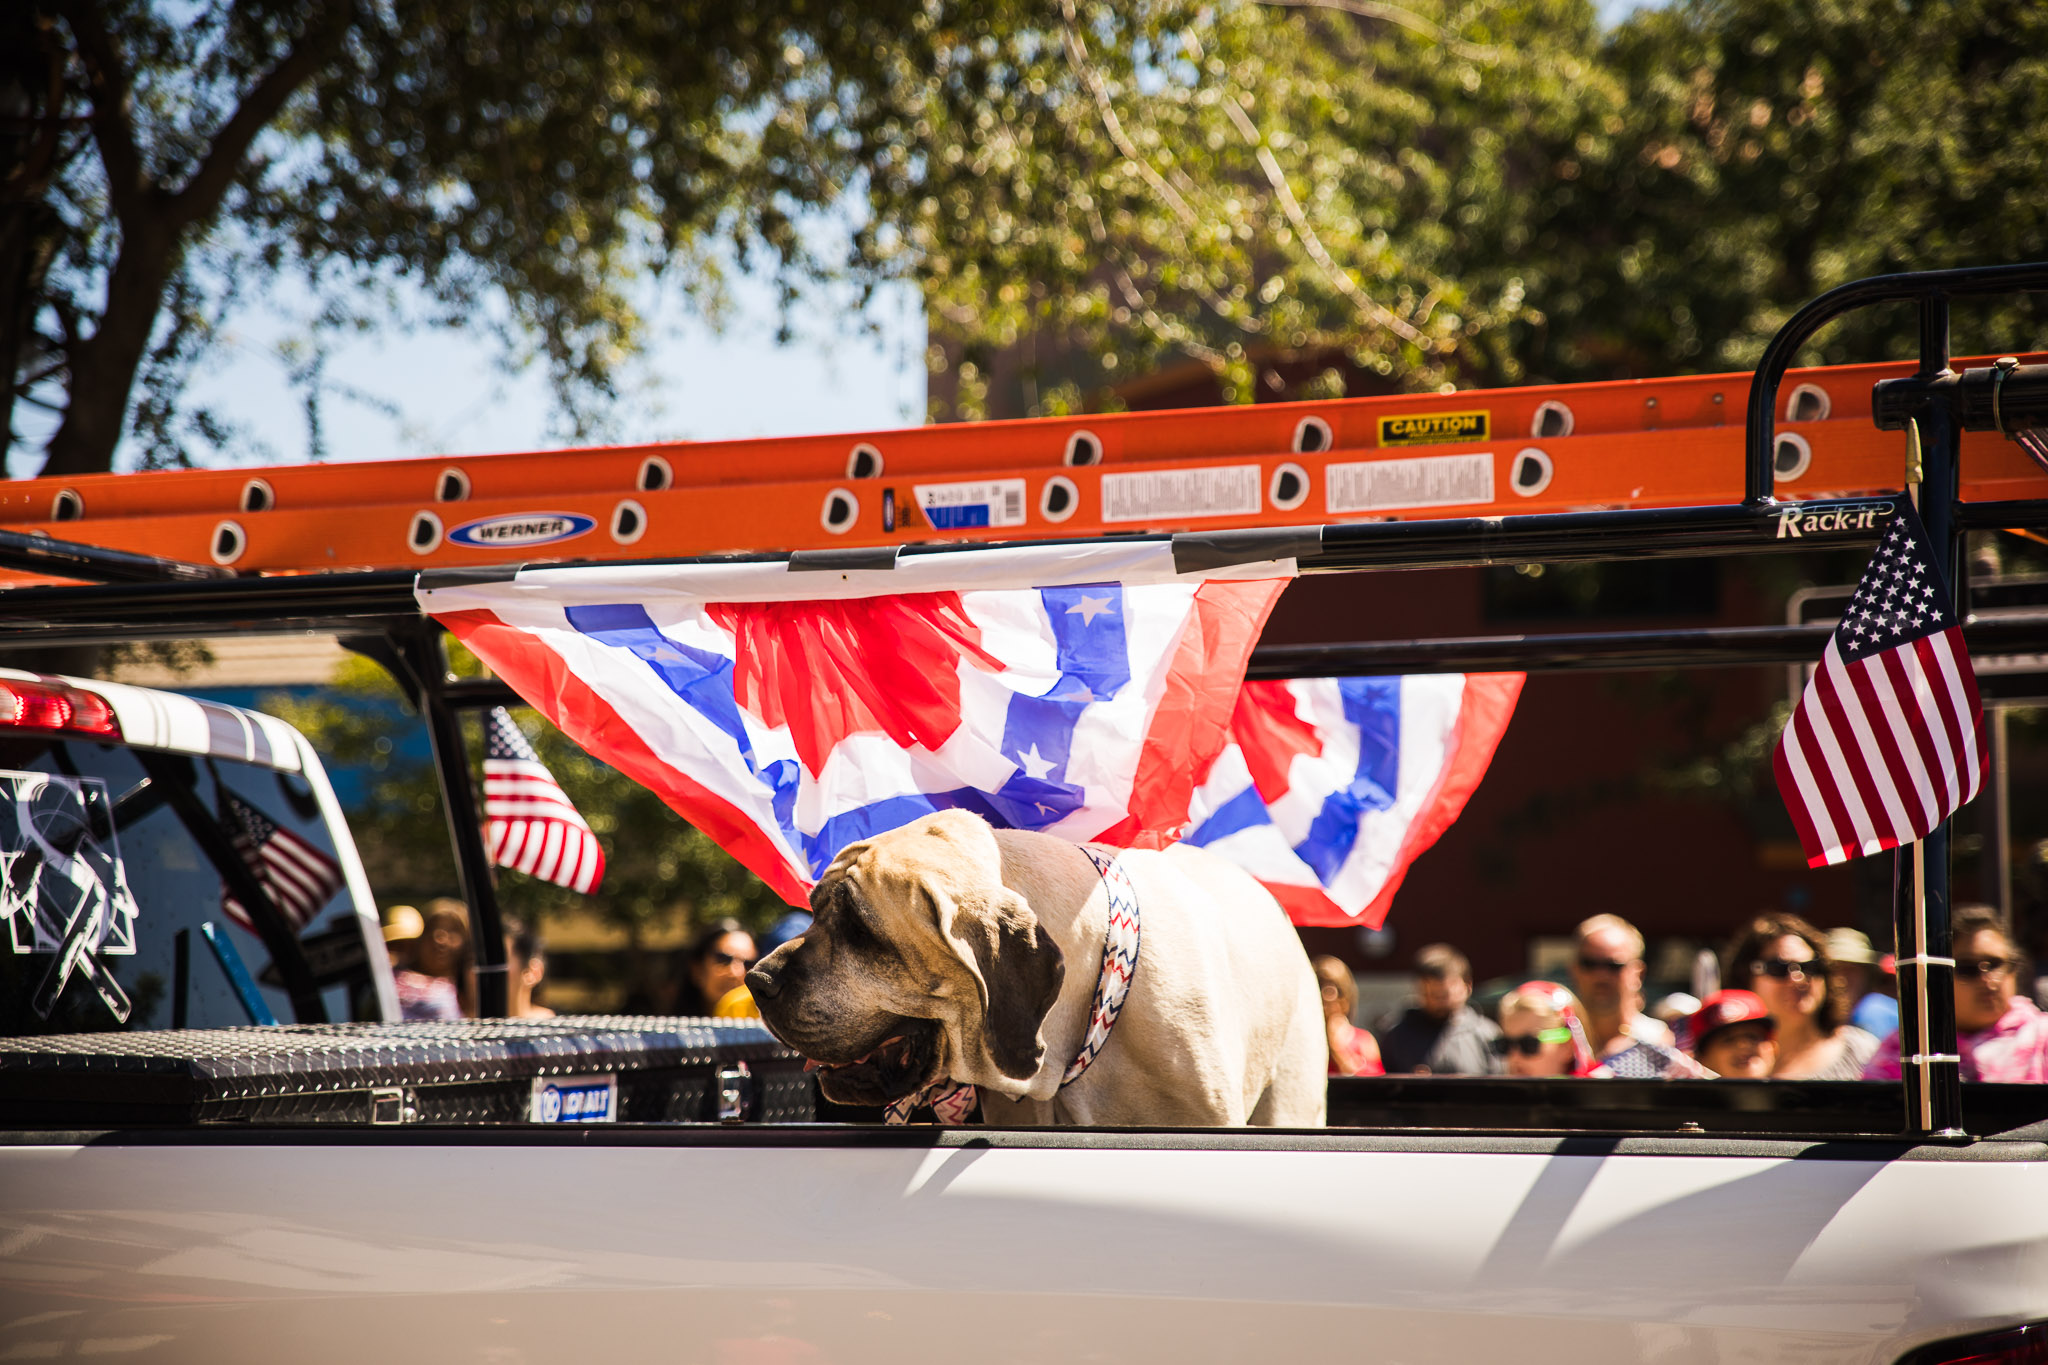 Archer_Inspired_Photography_Morgan_Hill_California_4th_of_july_parade-120.jpg